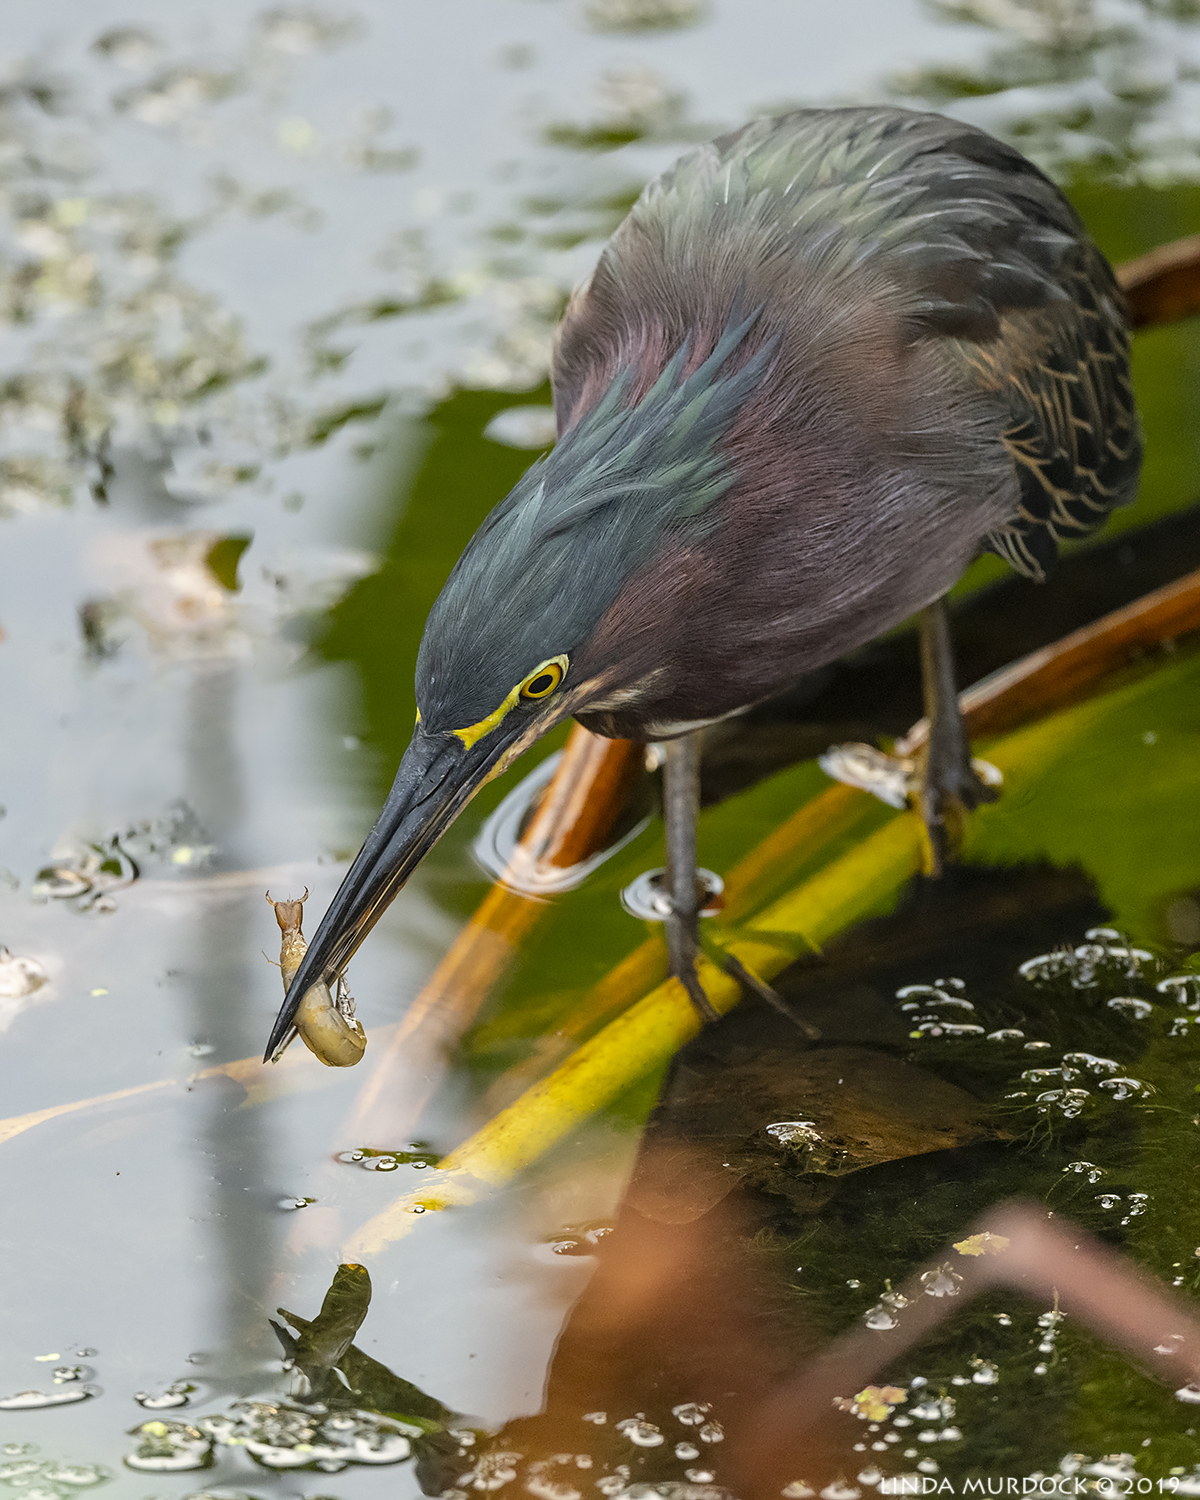 Green Heron with tasty treat Nikon D850 with Nikkor 500 f/5.6 PF VR ~ 1/640 sec f/5.6 ISO 2500; hand-held